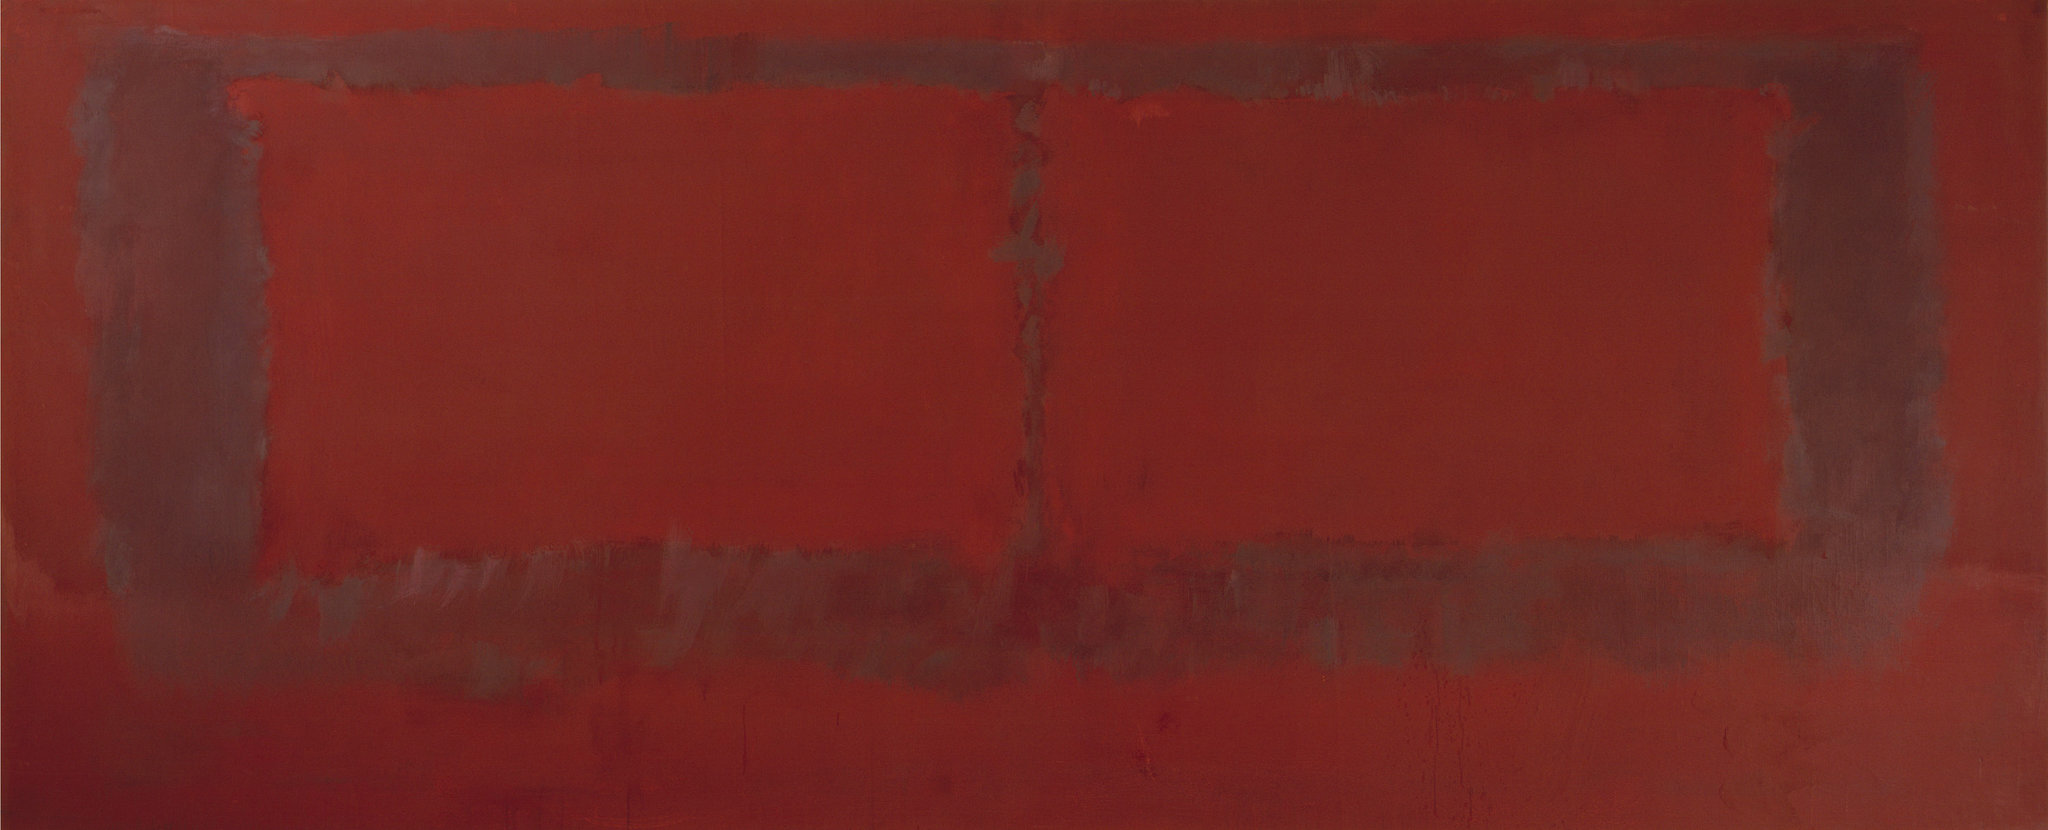 Mark Rothko S Dark Palette Illuminated The New York Times